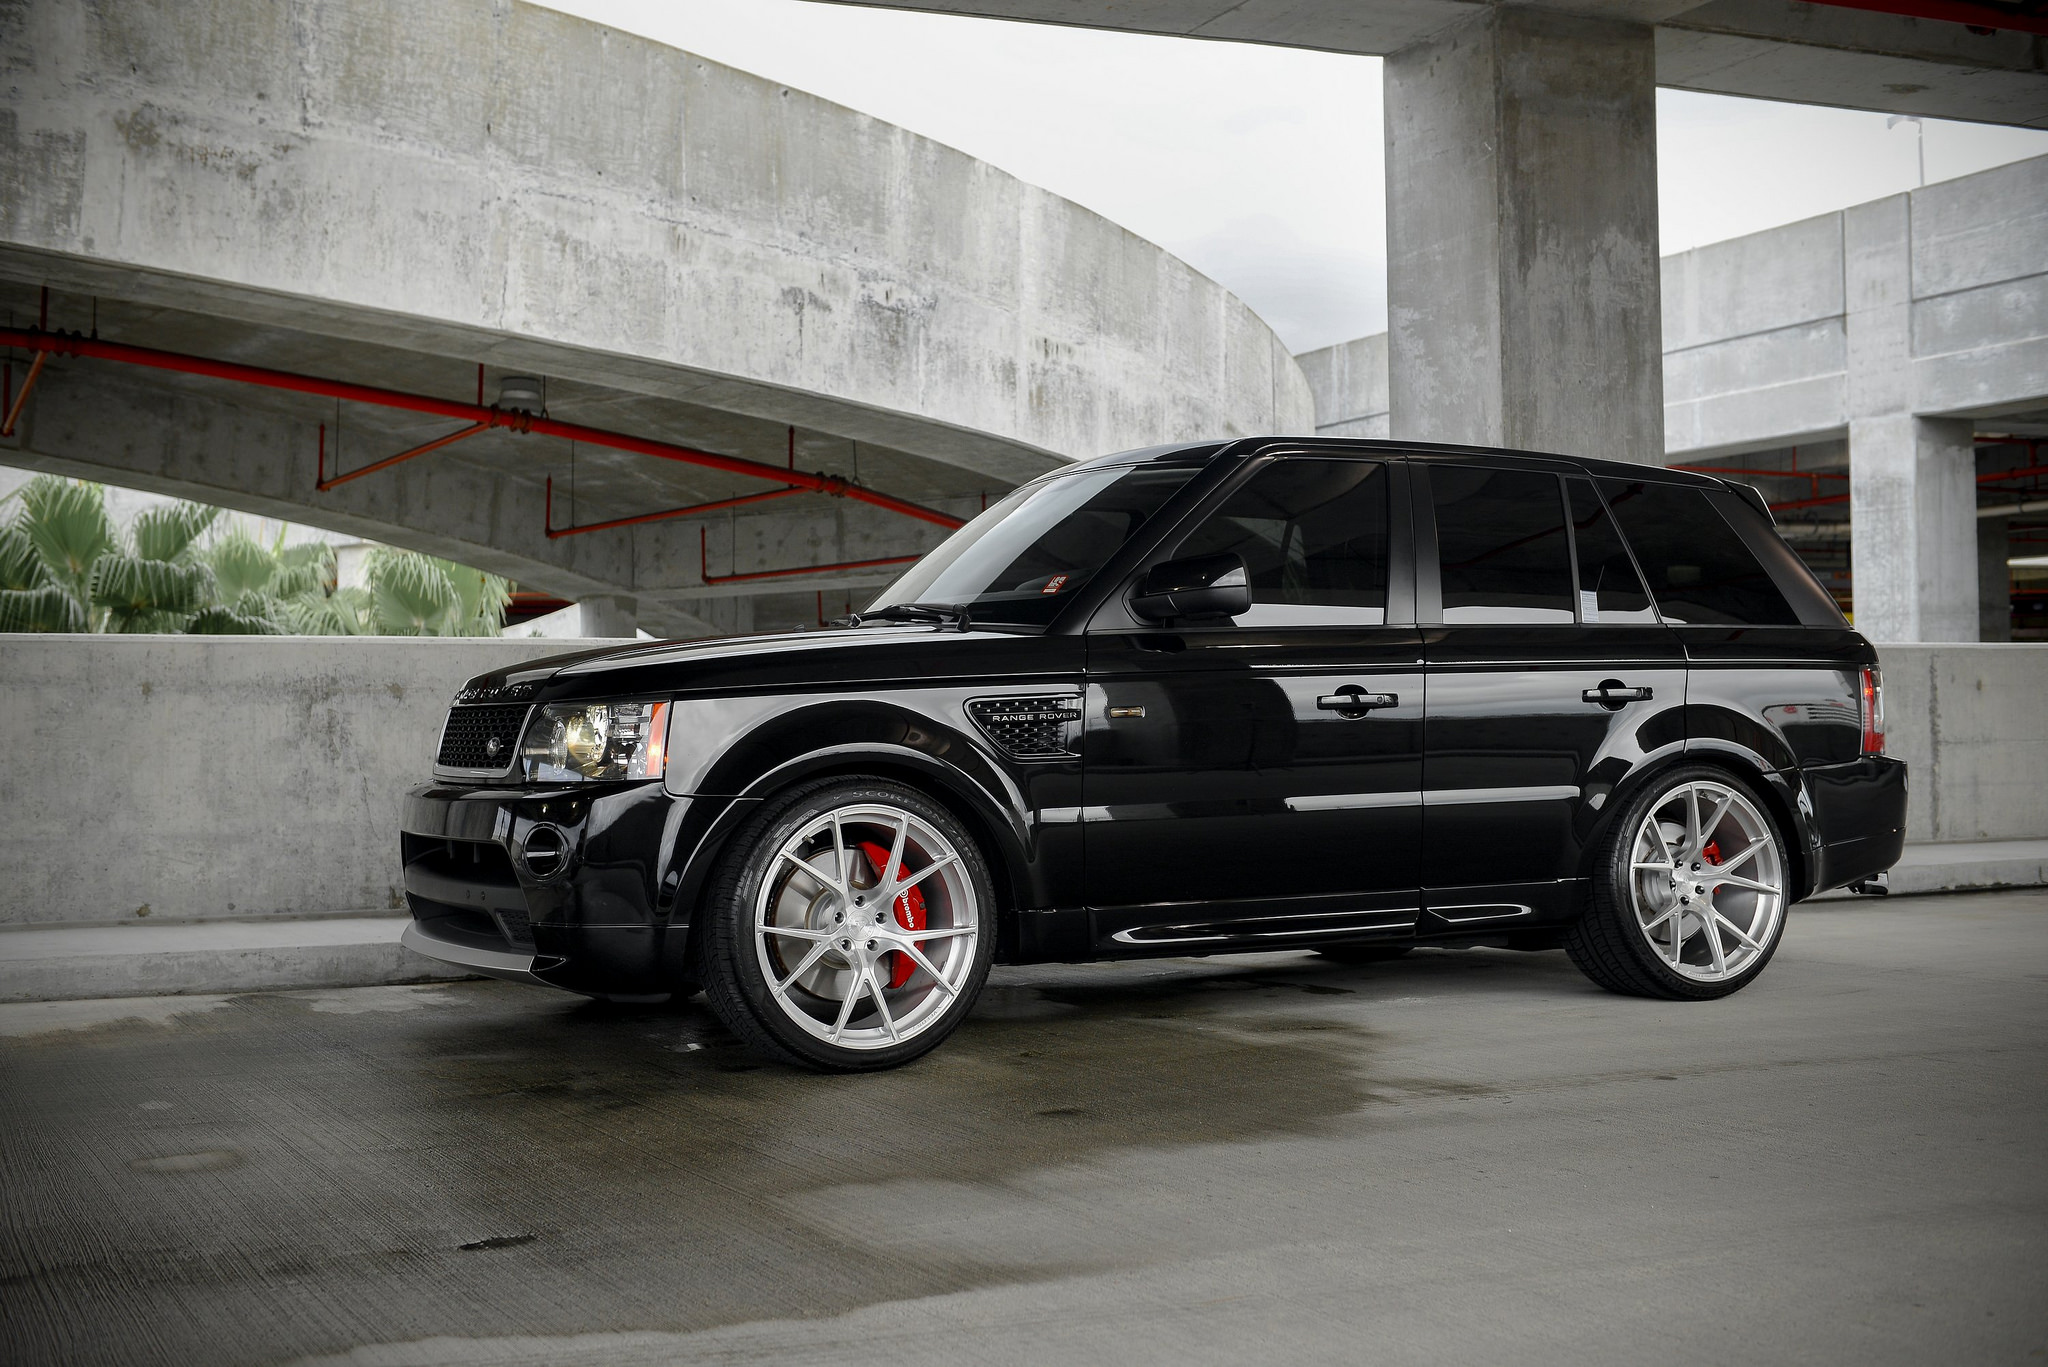 2011 range rover sport supercharged on 22 velos s3 forged. Black Bedroom Furniture Sets. Home Design Ideas